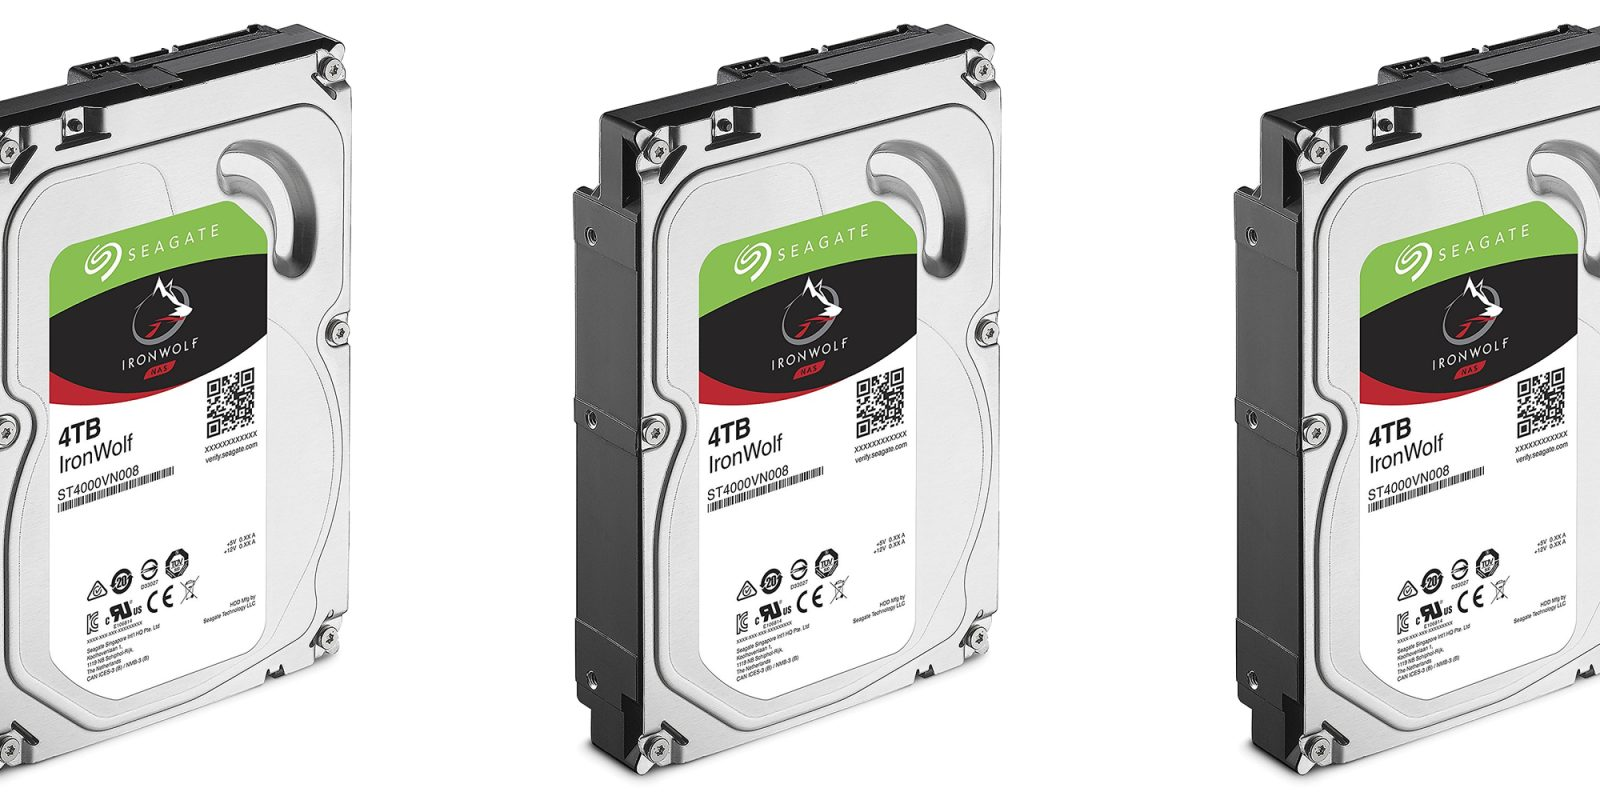 Add two 4TB Seagate IronWolf Hard Drives to your NAS or media server for $200 shipped (Save $40)